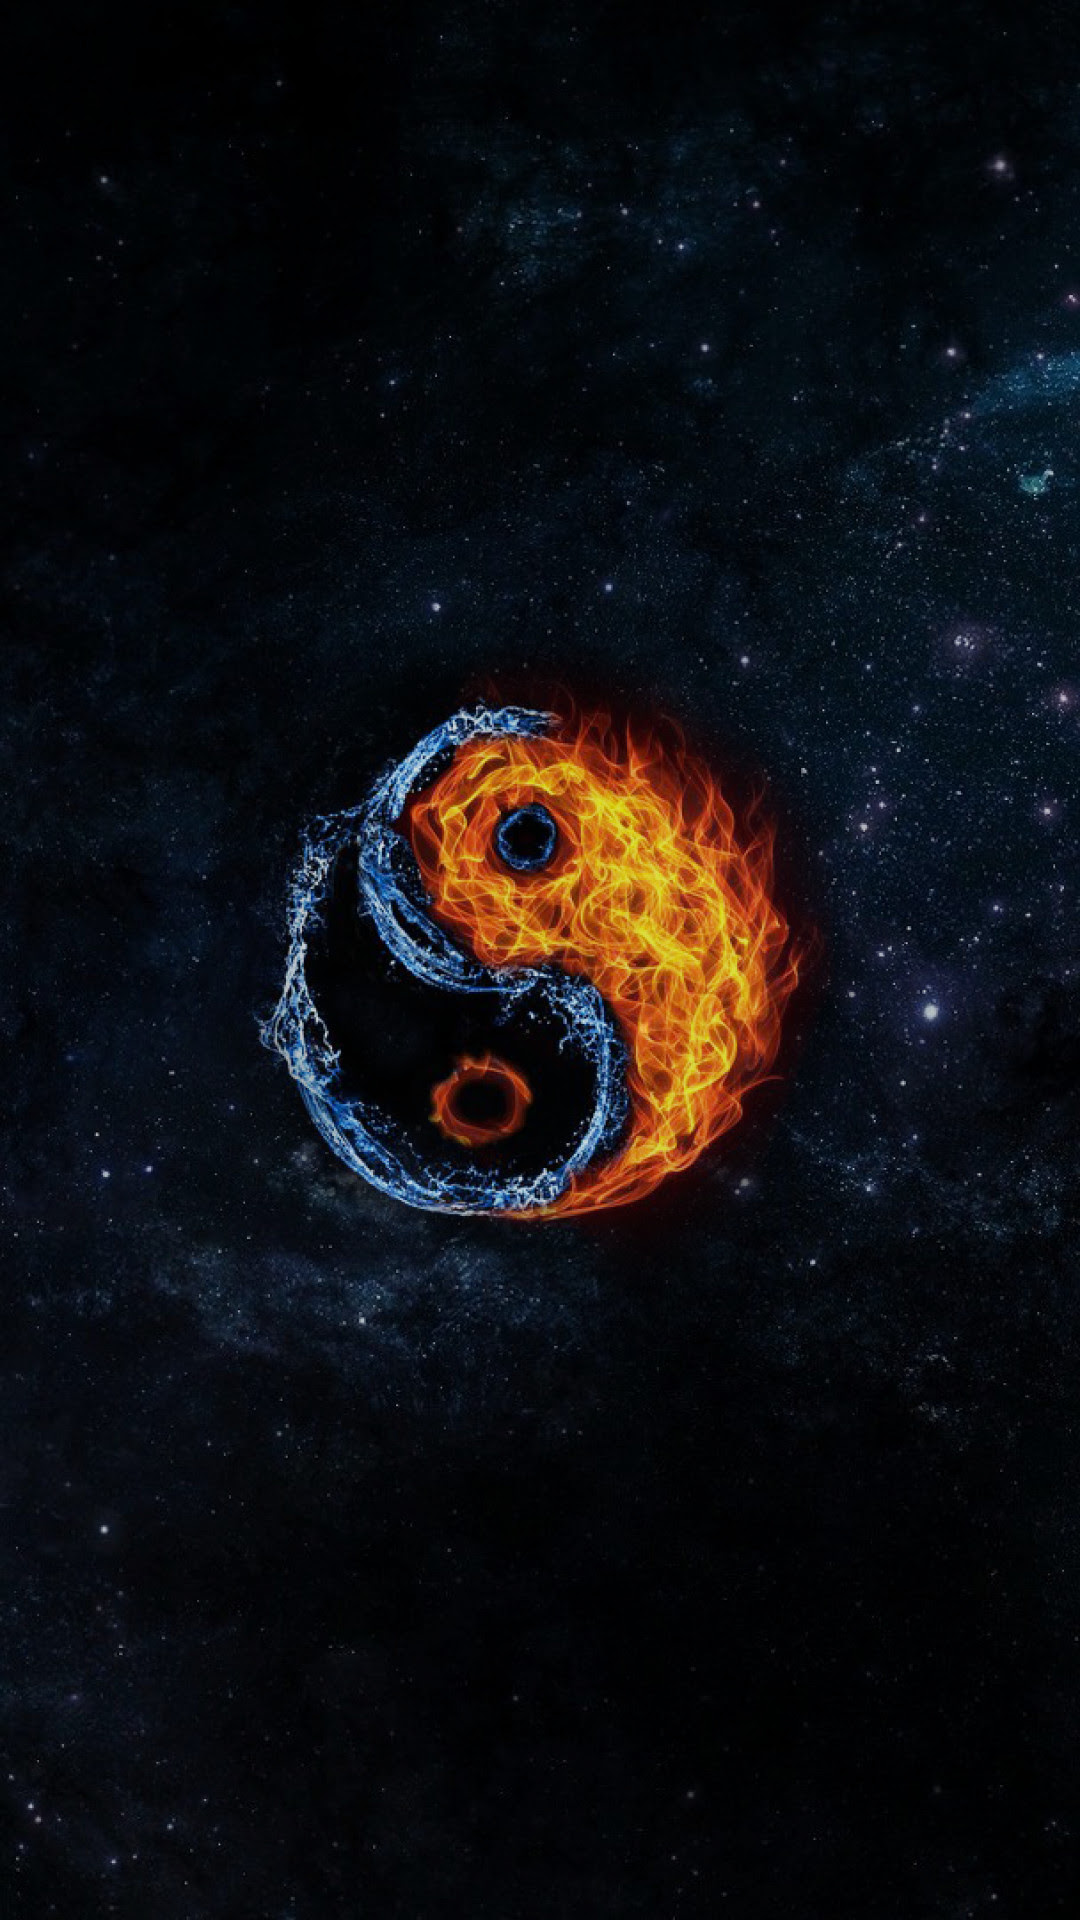 Ying and Yang Wallpaper 69+ images